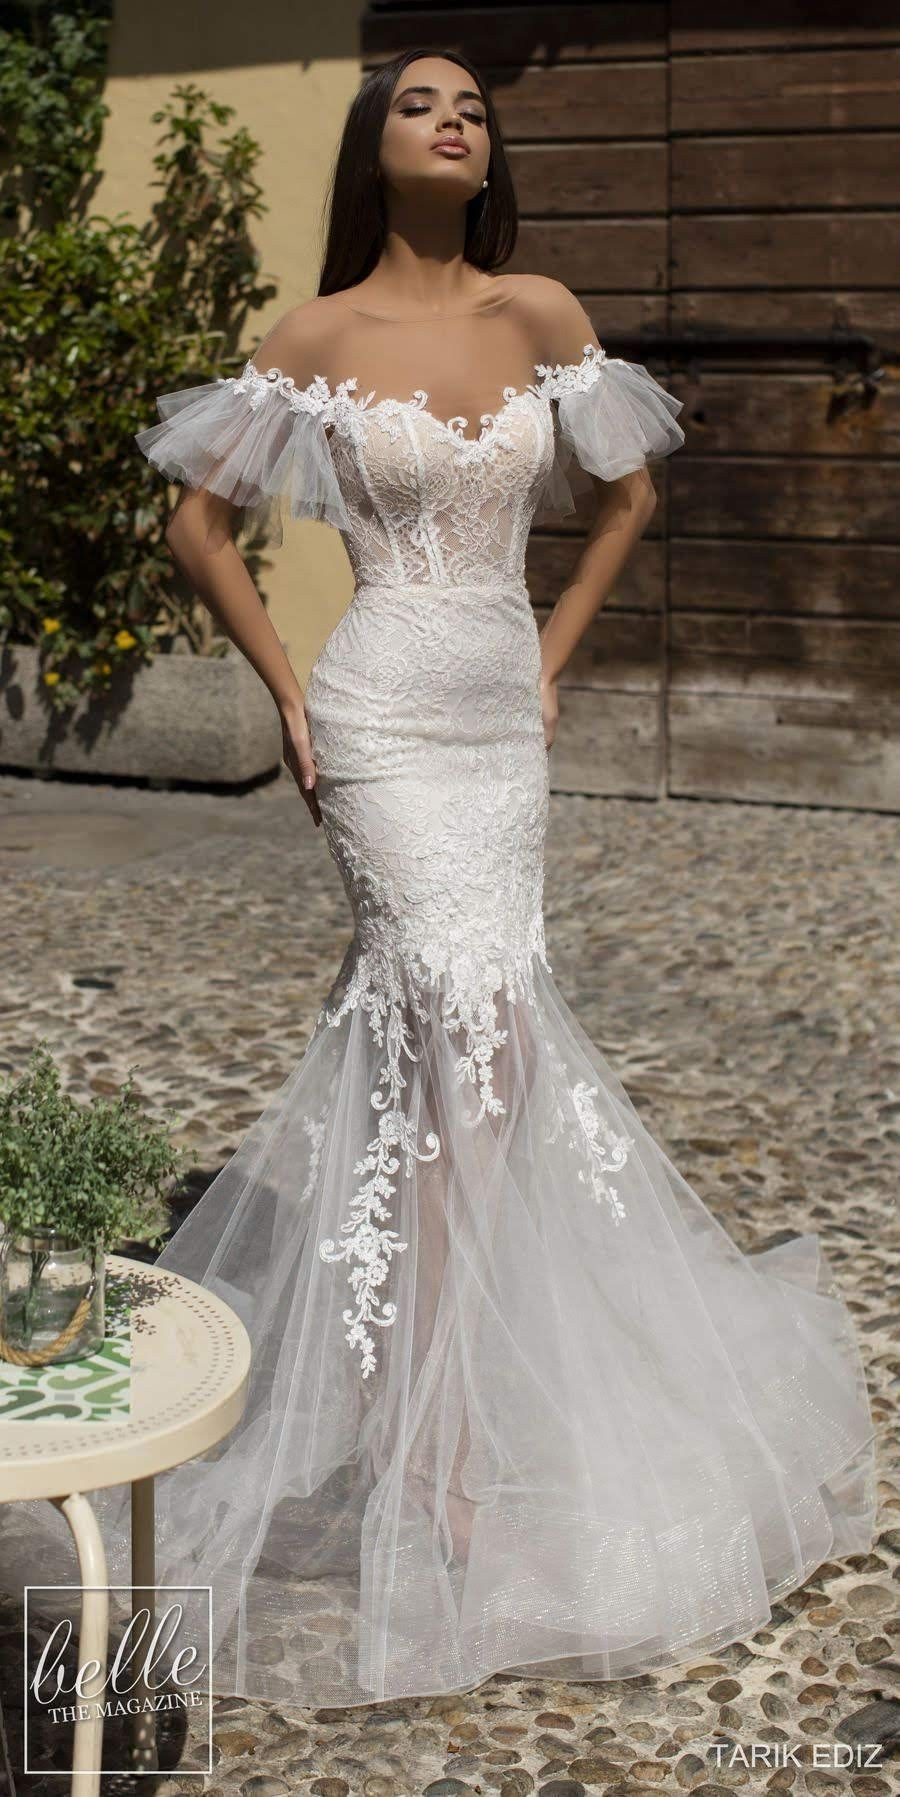 57700f107315 Beautiful White Lace Wedding Dresses For Your Big Day - Page 35 of 38 -  Chic Hostess